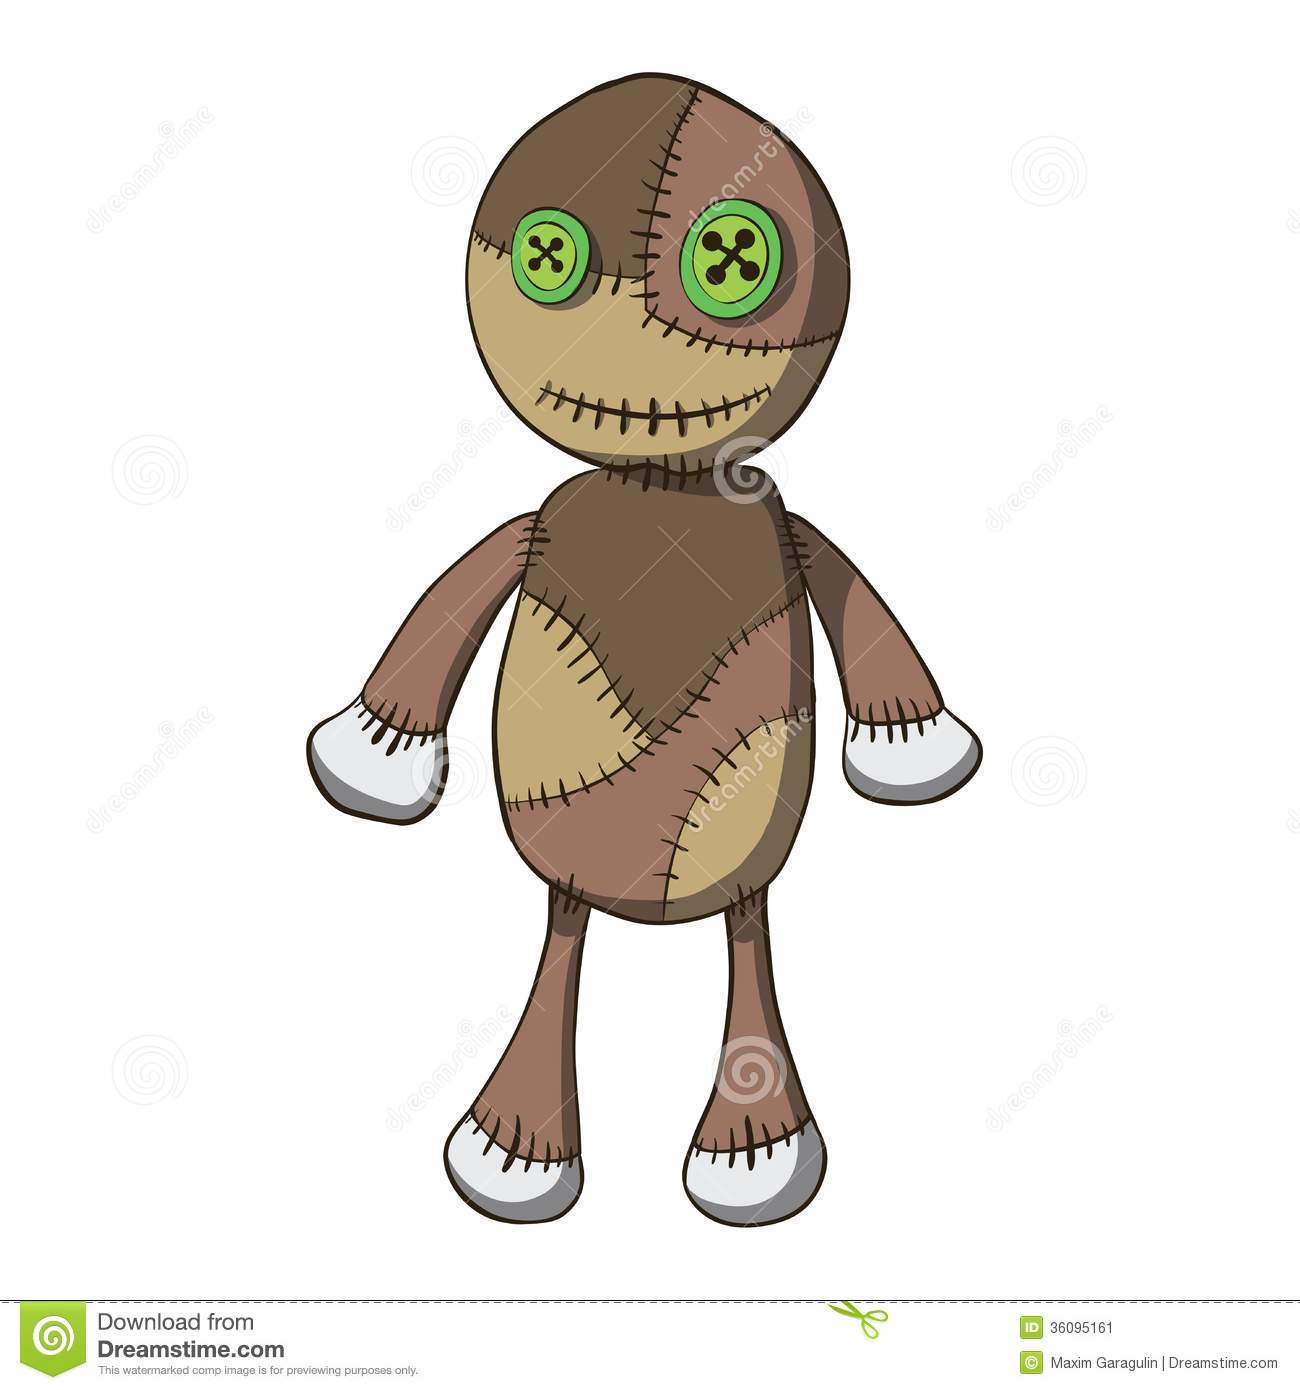 Download image Rag Doll Cartoon PC, Android, iPhone and iPad ...